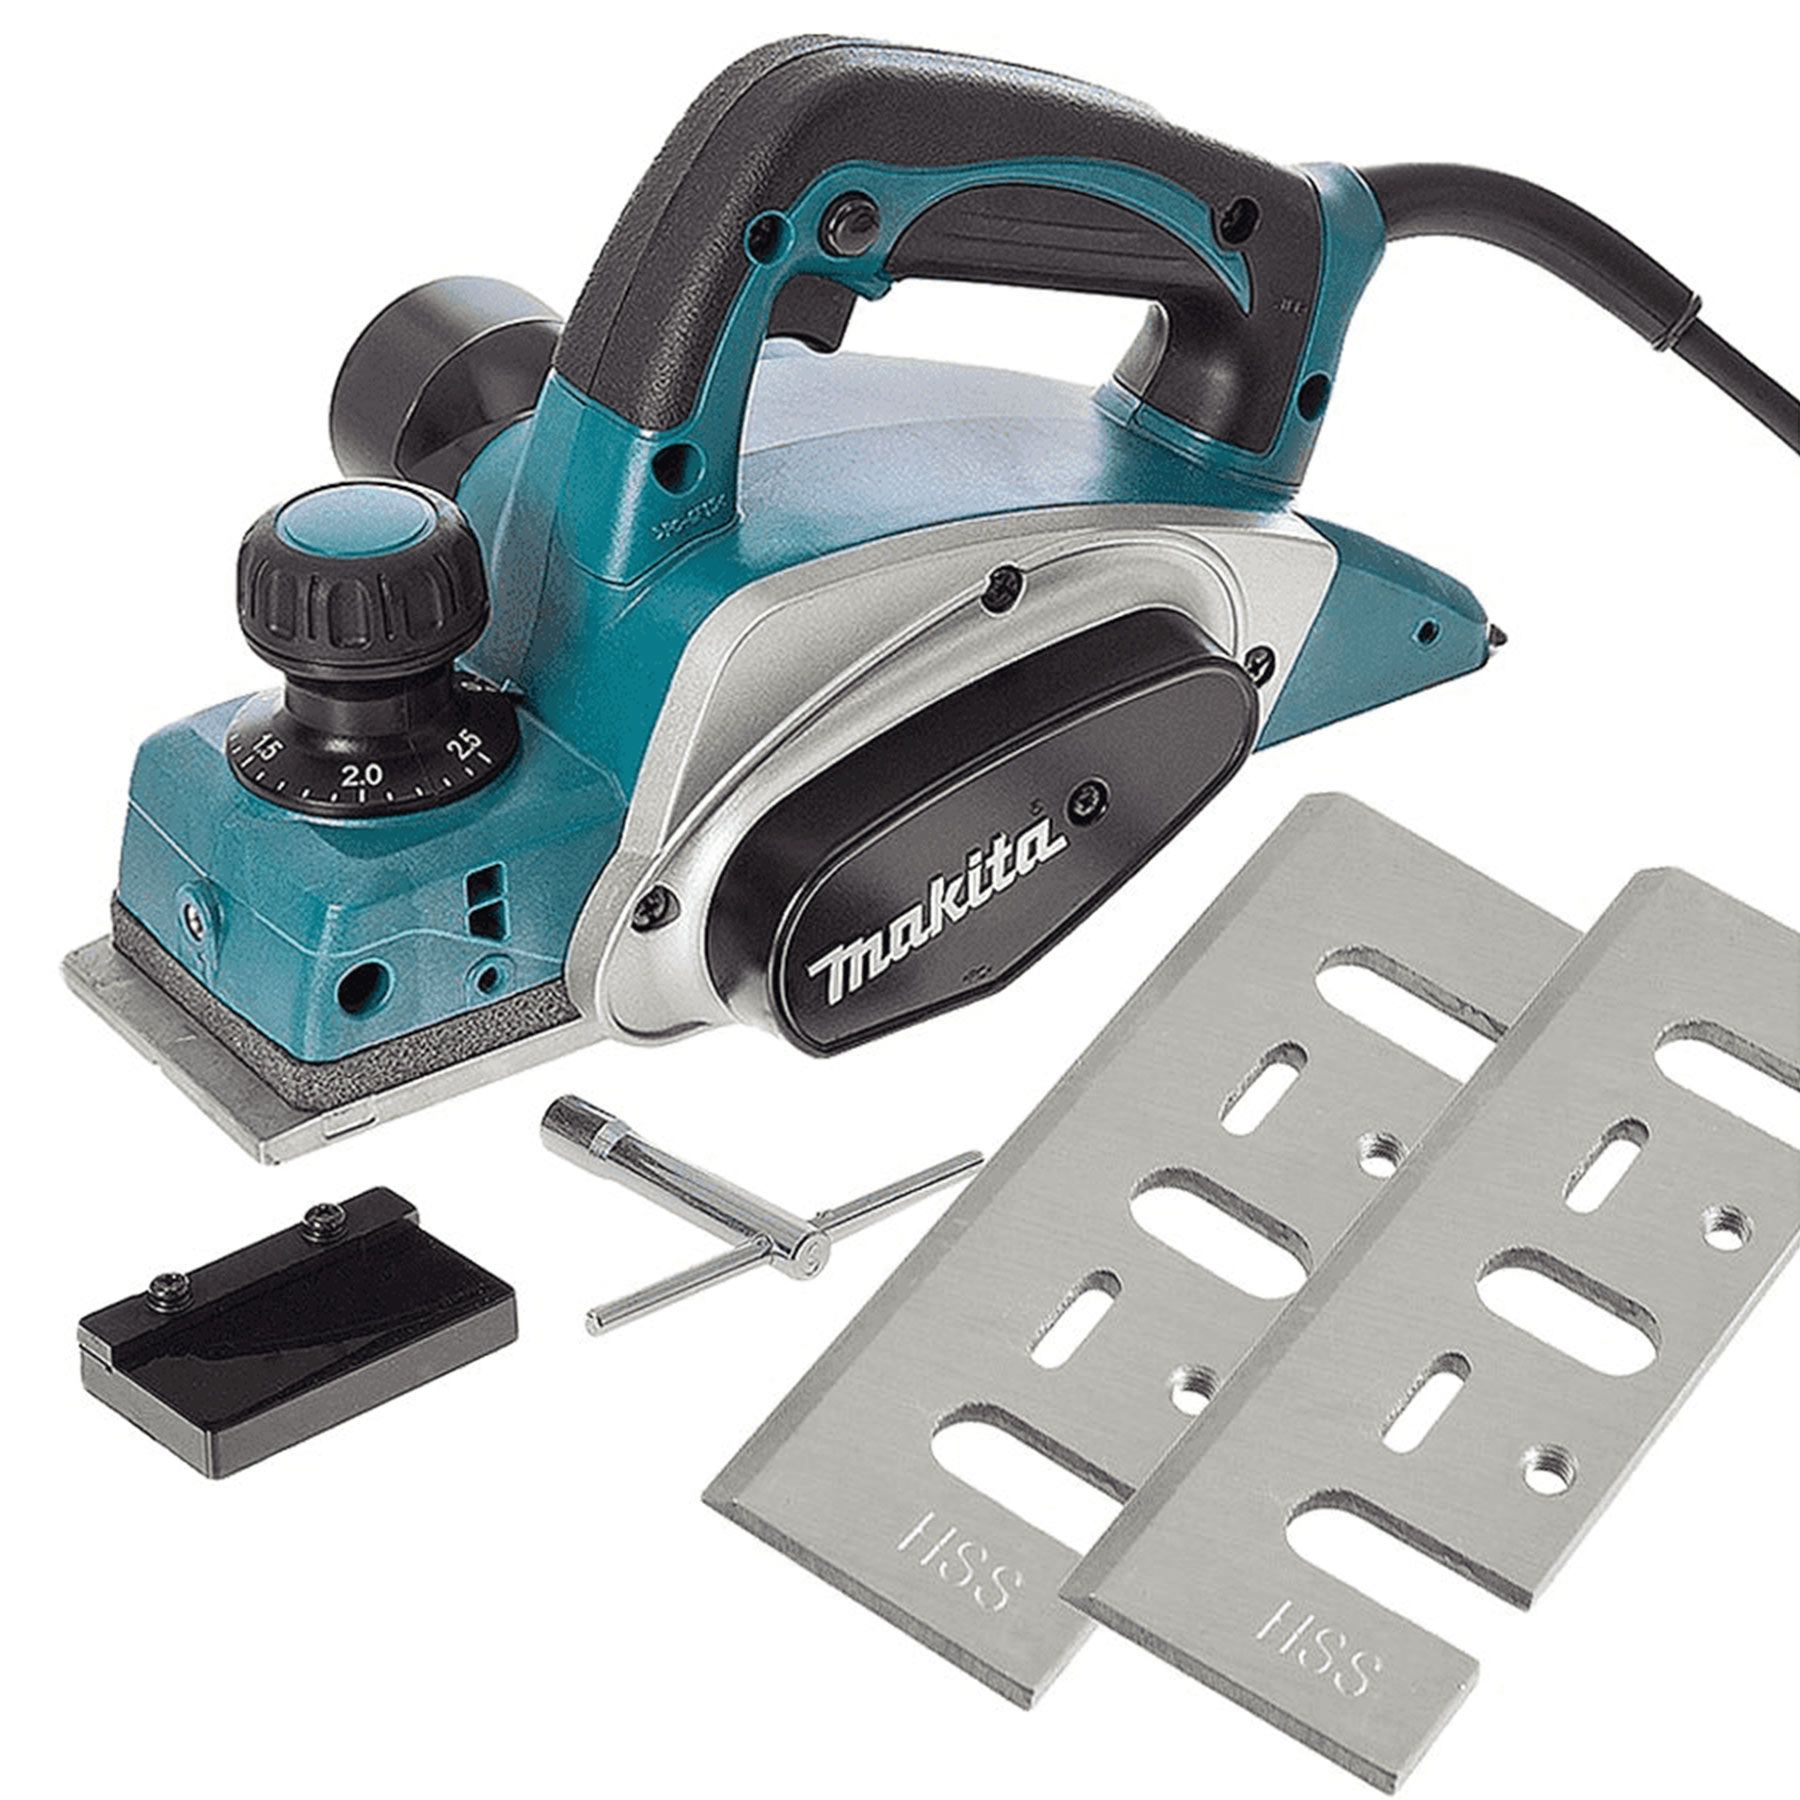 PLAINA ELETRICA 82MM 220V KP0800 MAKITA